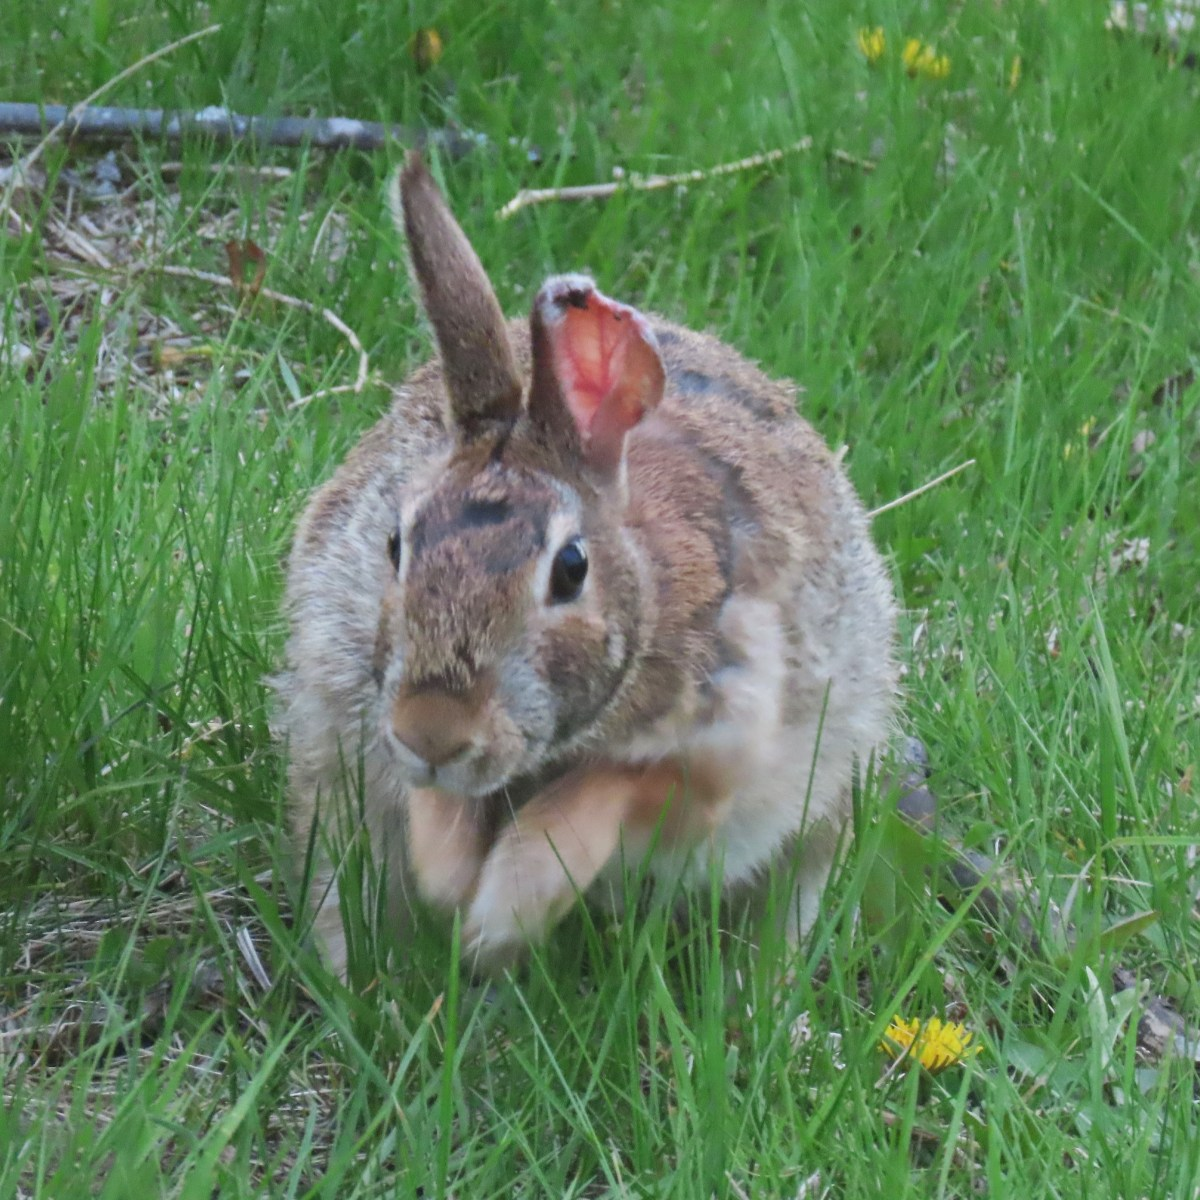 A rabbit sits in a grassy area